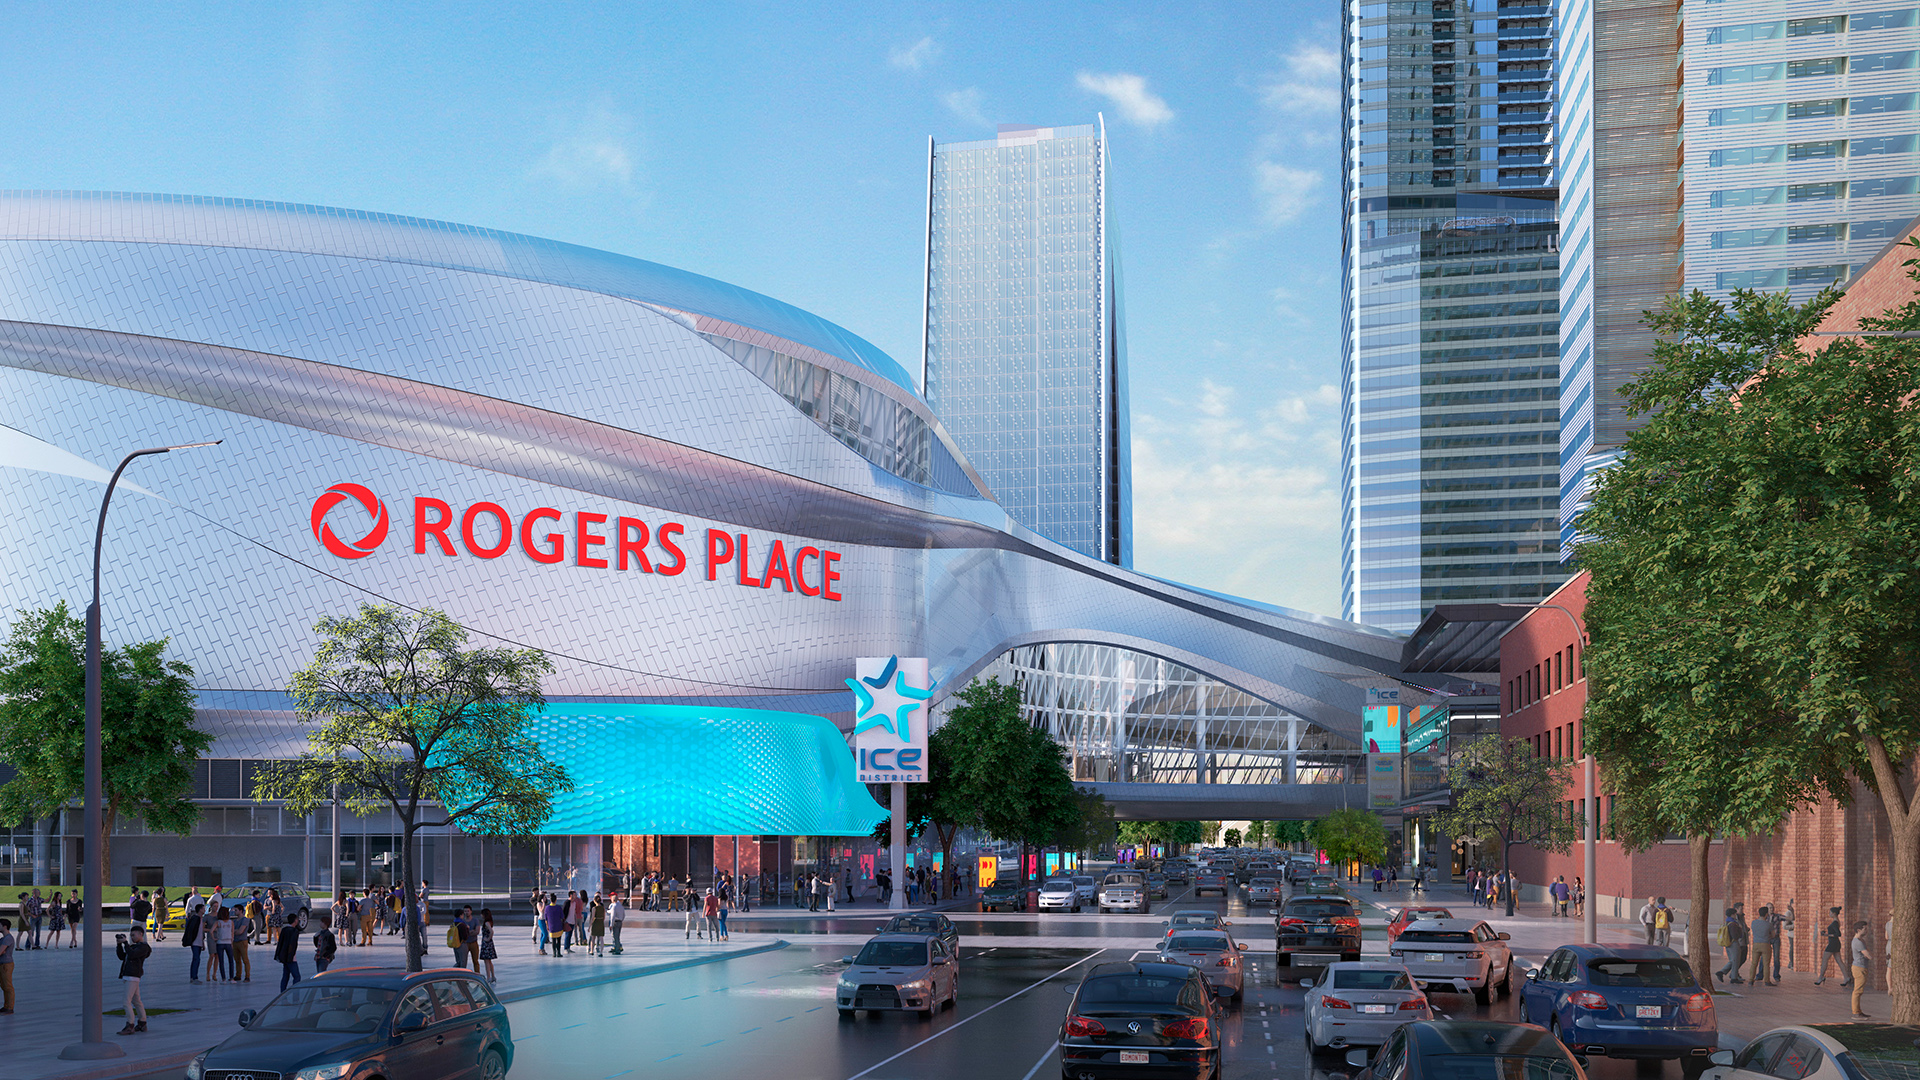 Rogers Place Receives Gold Award from IOC & IAKS for Exemplary ...